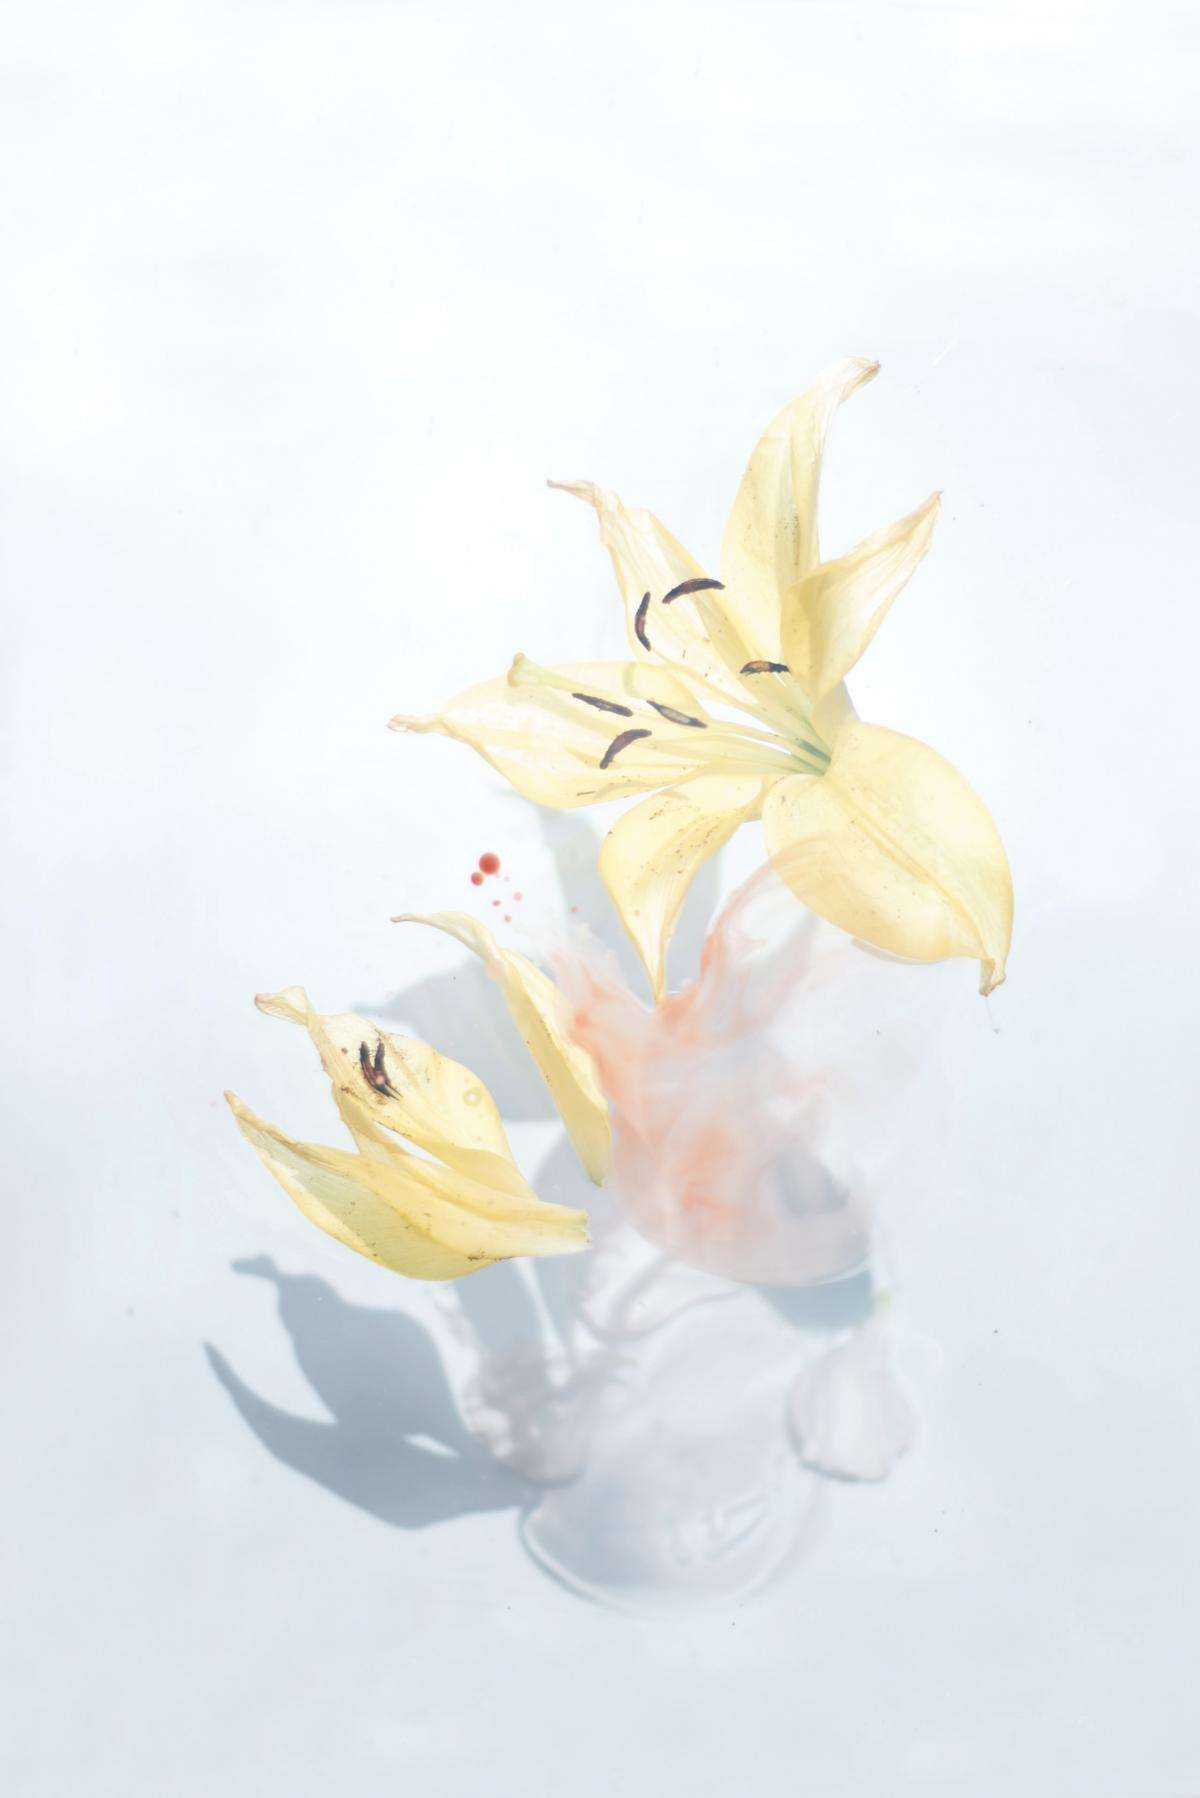 Floral Lily Flower